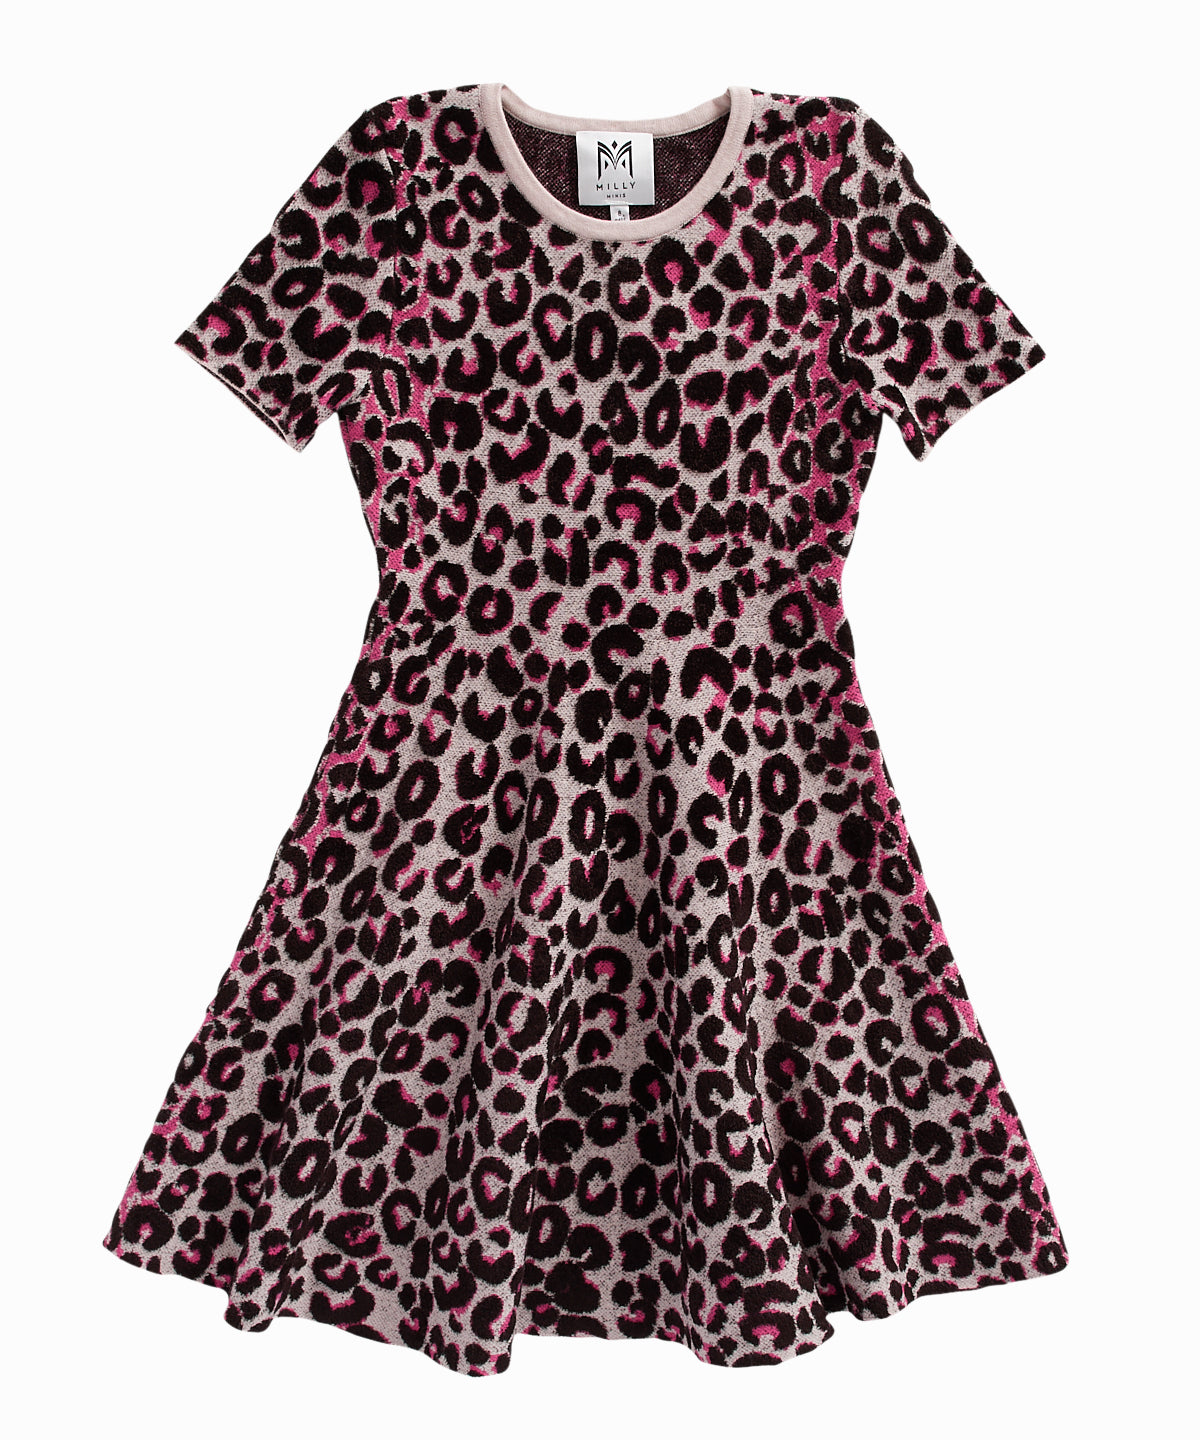 Cheetah Print Flare Dress